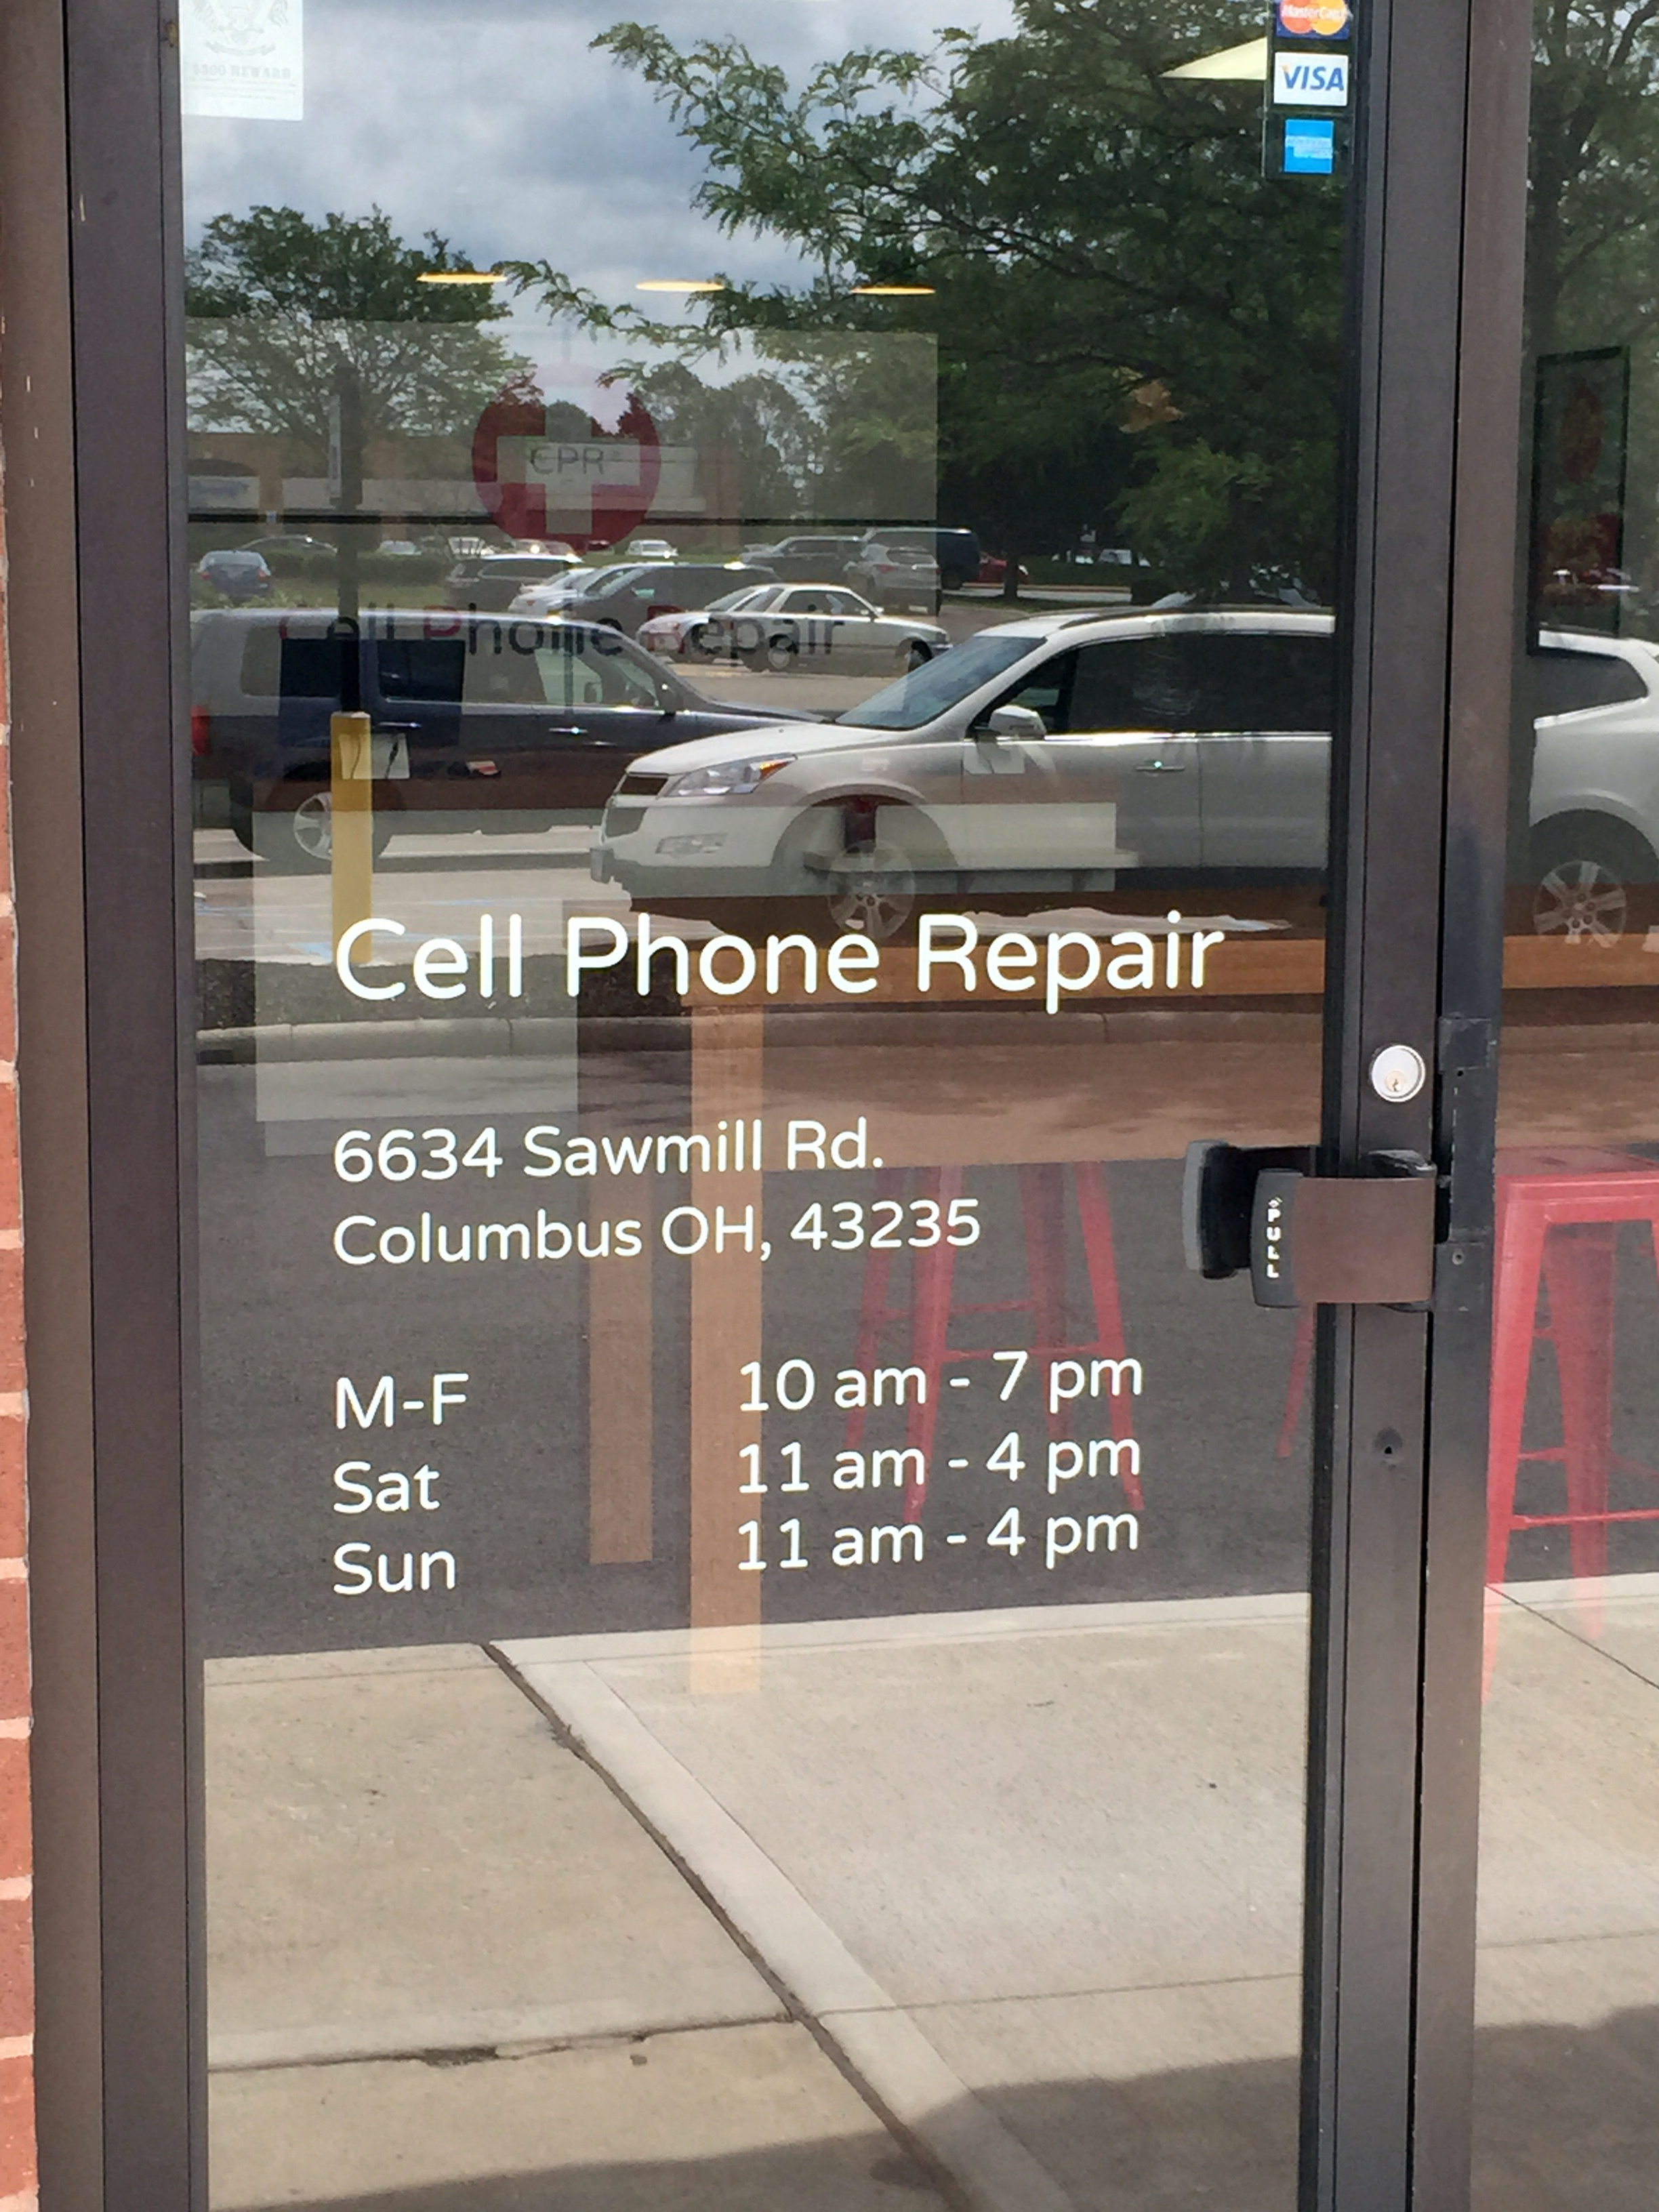 Cpr cell phone repair dublin 6634 sawmill rd columbus oh 43235 cpr cell phone repair dublin 6634 sawmill rd columbus oh 43235 yp 1betcityfo Choice Image